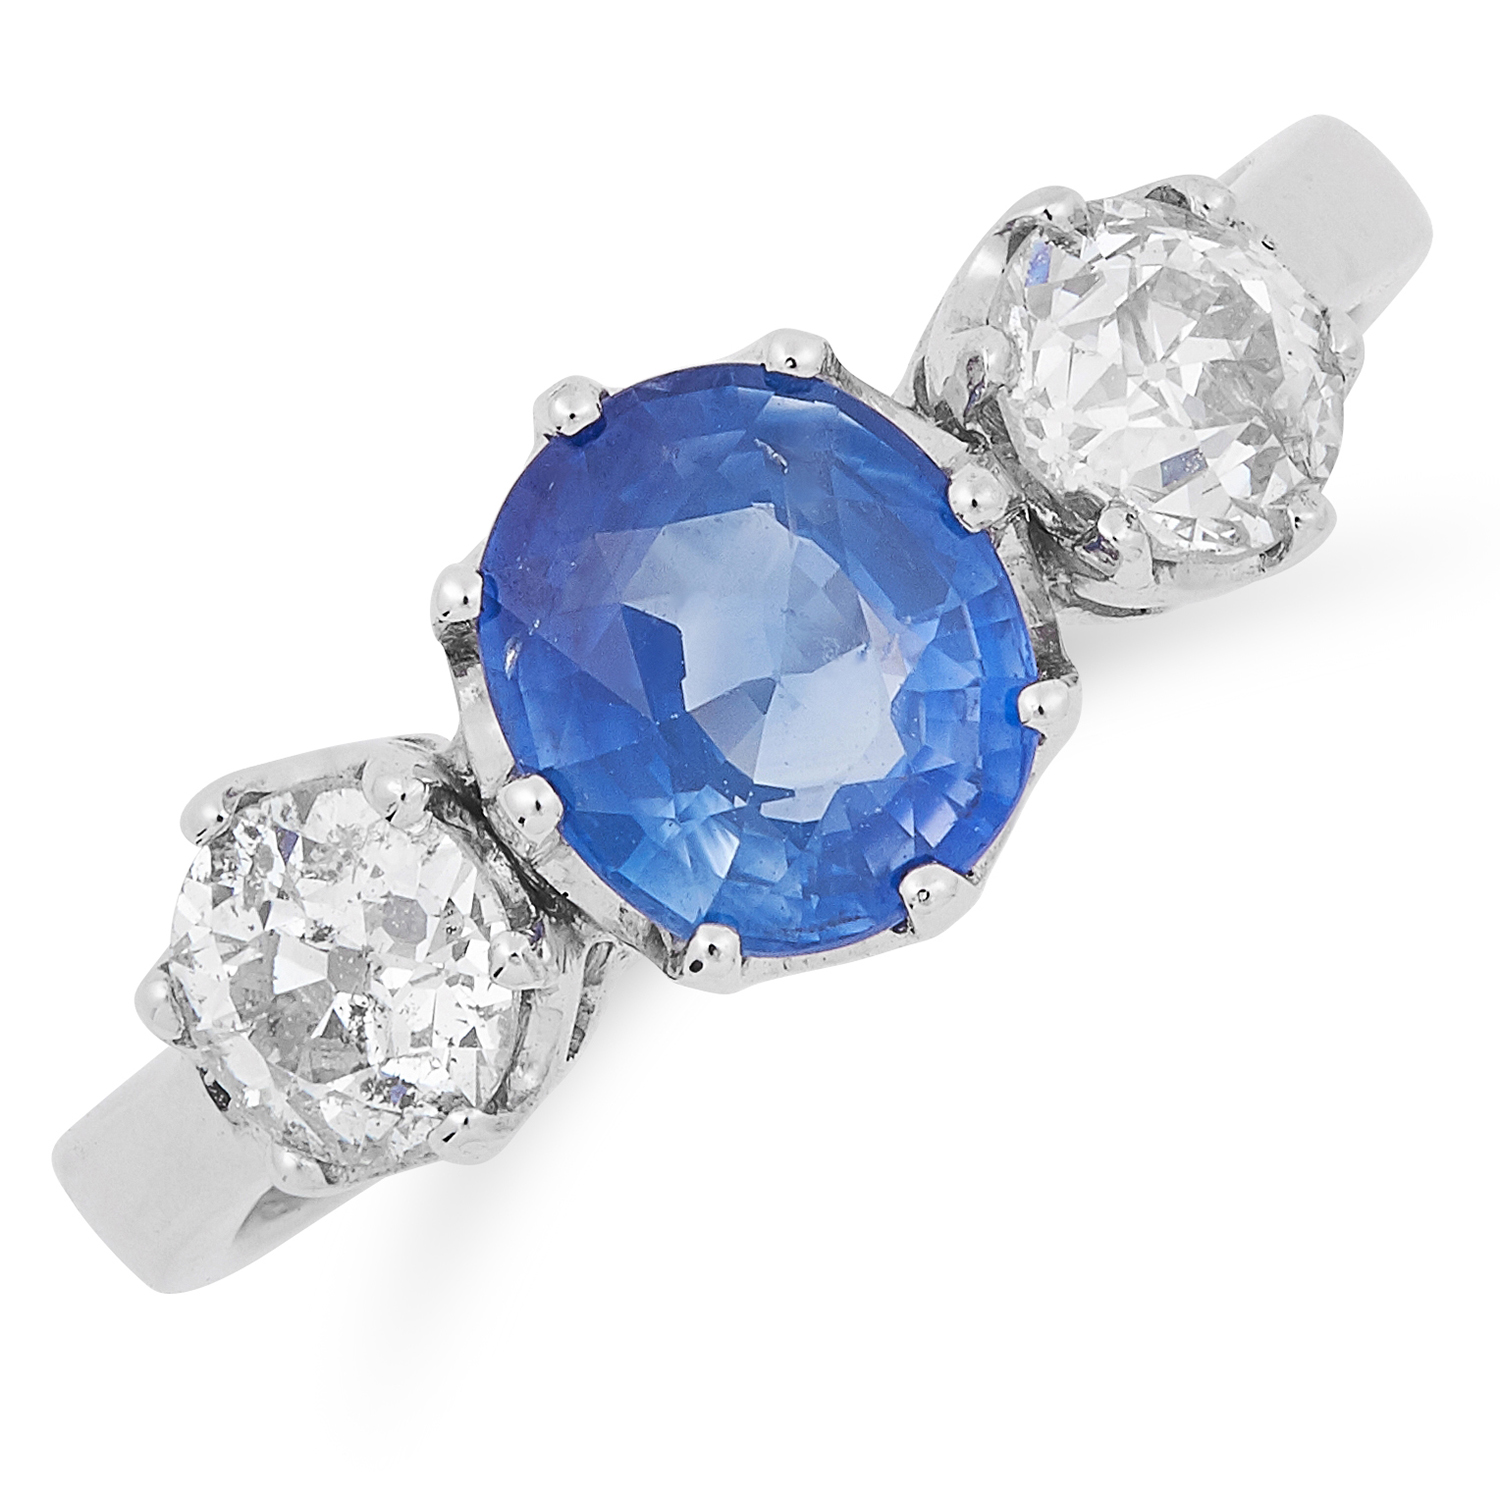 Los 24 - SAPPHIRE AND DIAMOND THREE STONE RING set with an oval cut sapphire of approximately 1.14 carats